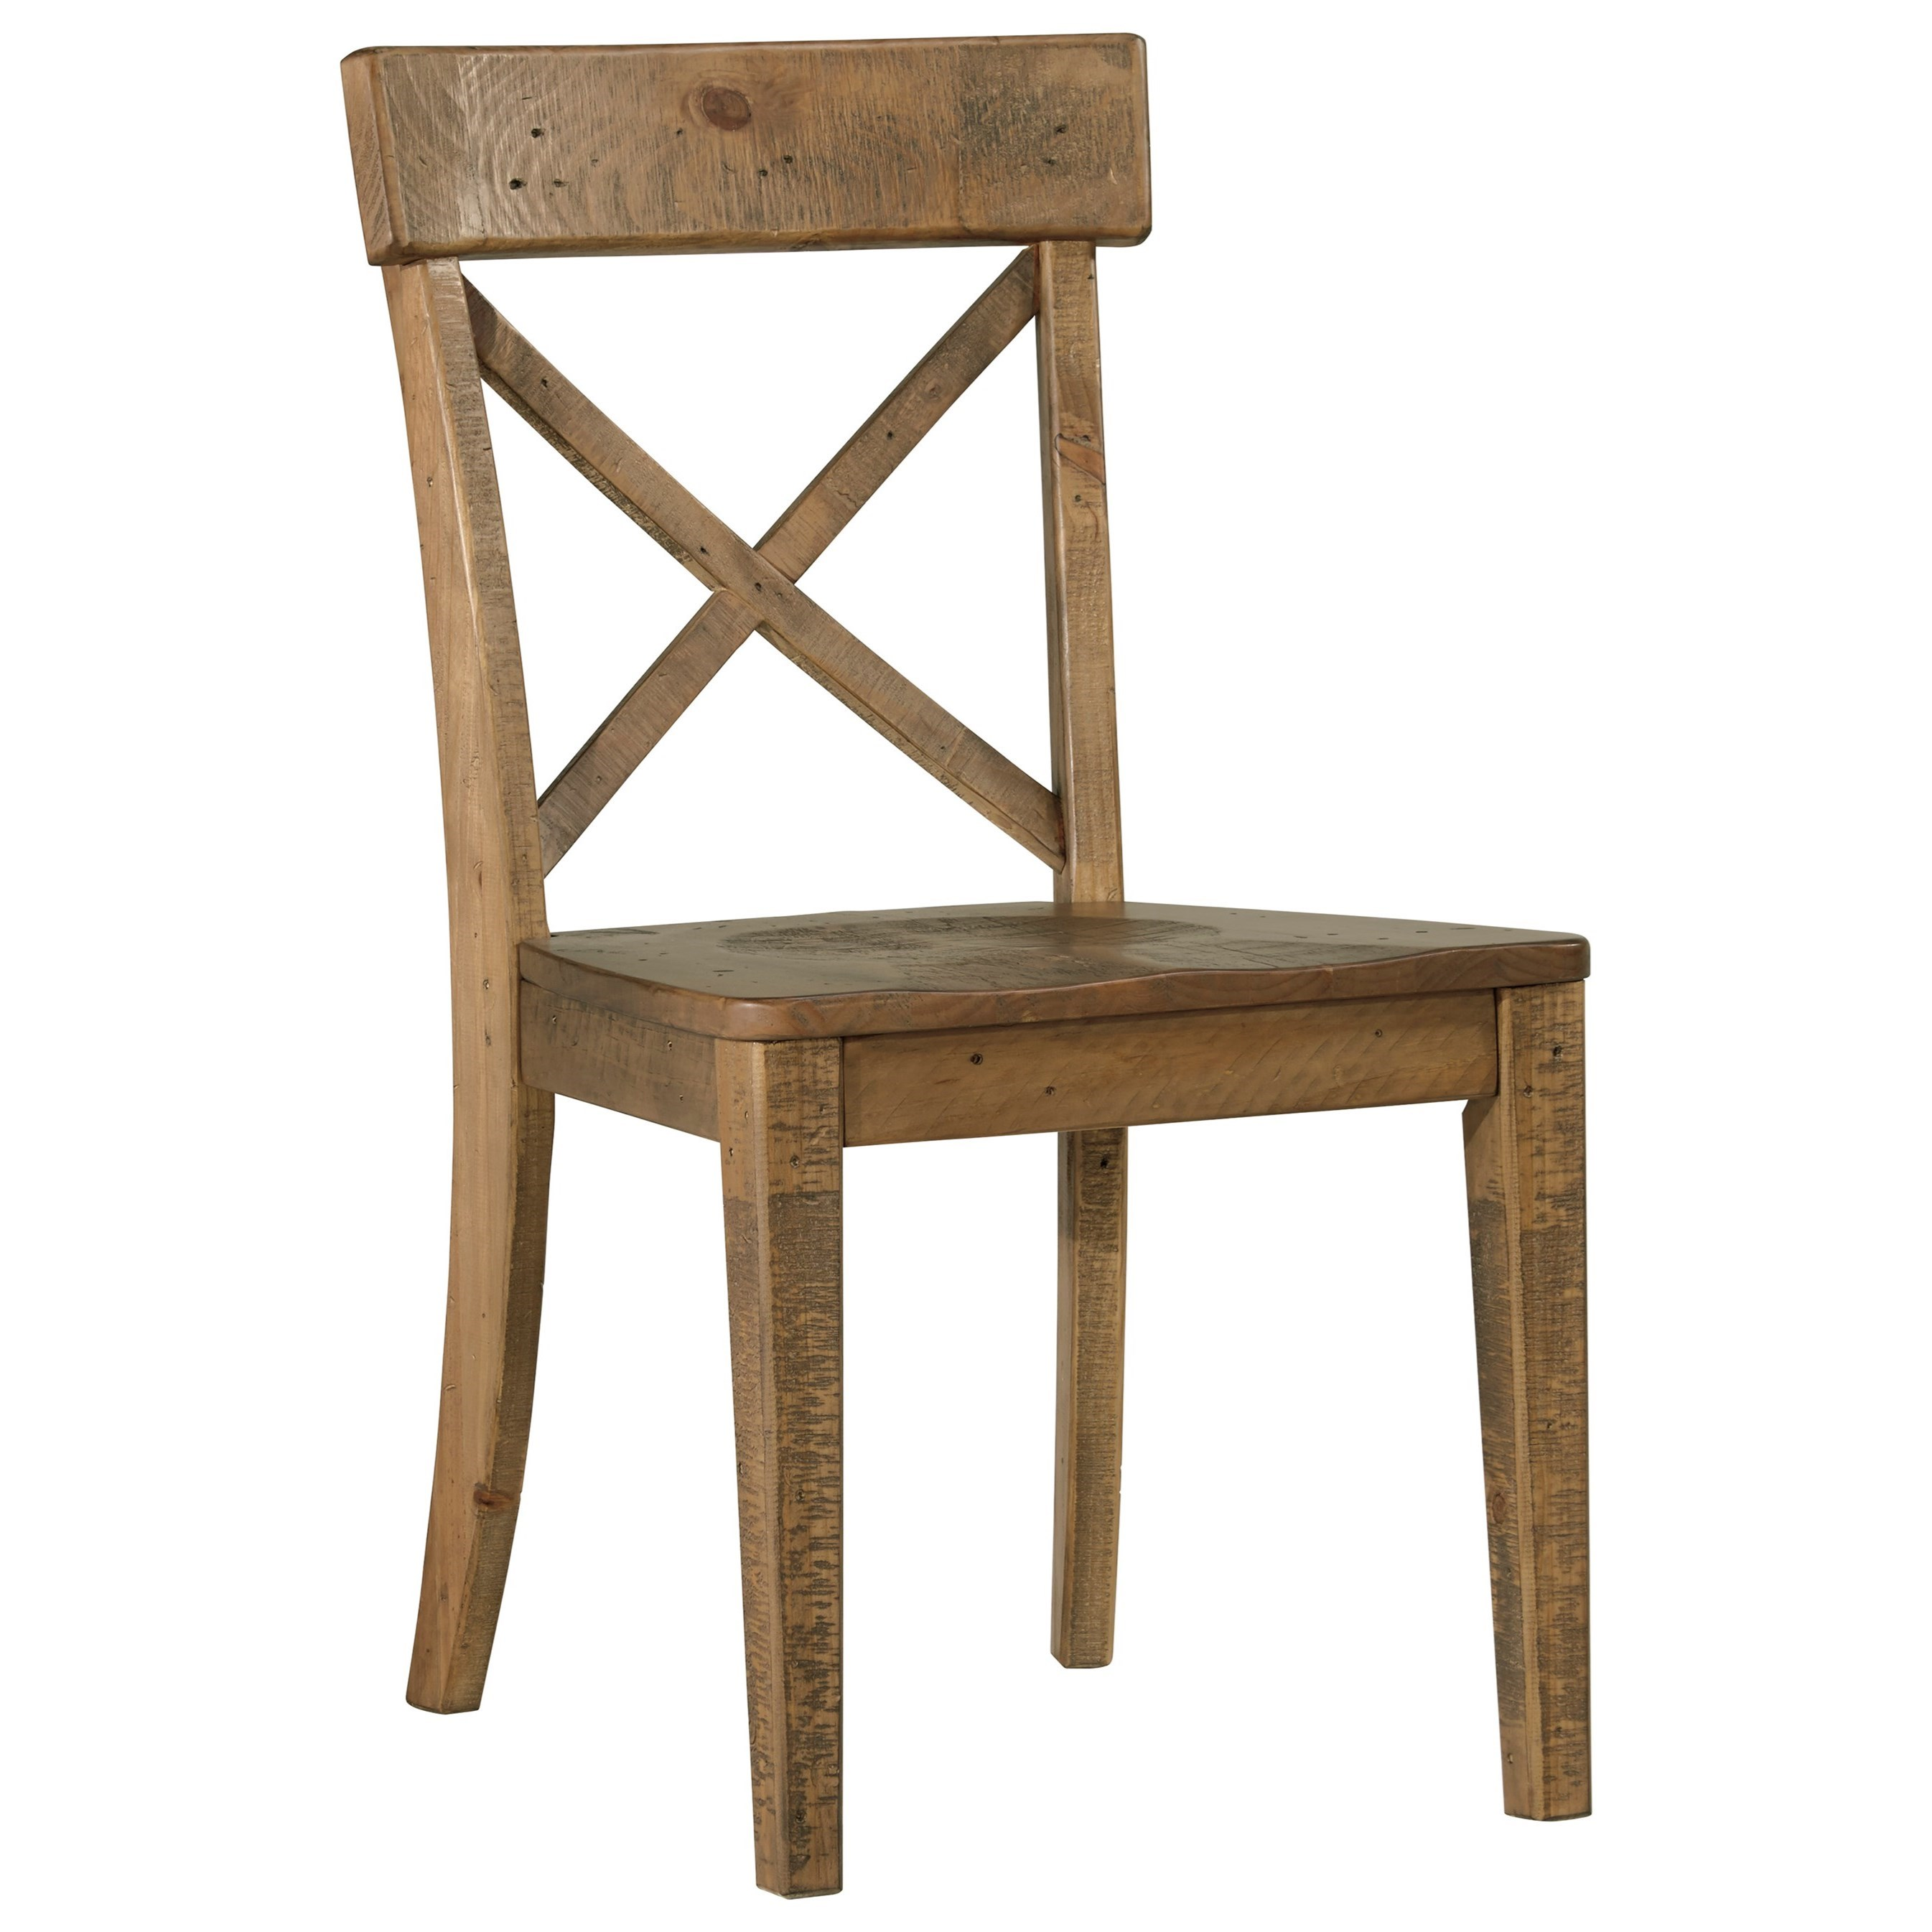 Signature Design by Ashley Trishley Dining Room Side Chair - Item Number: D659-01